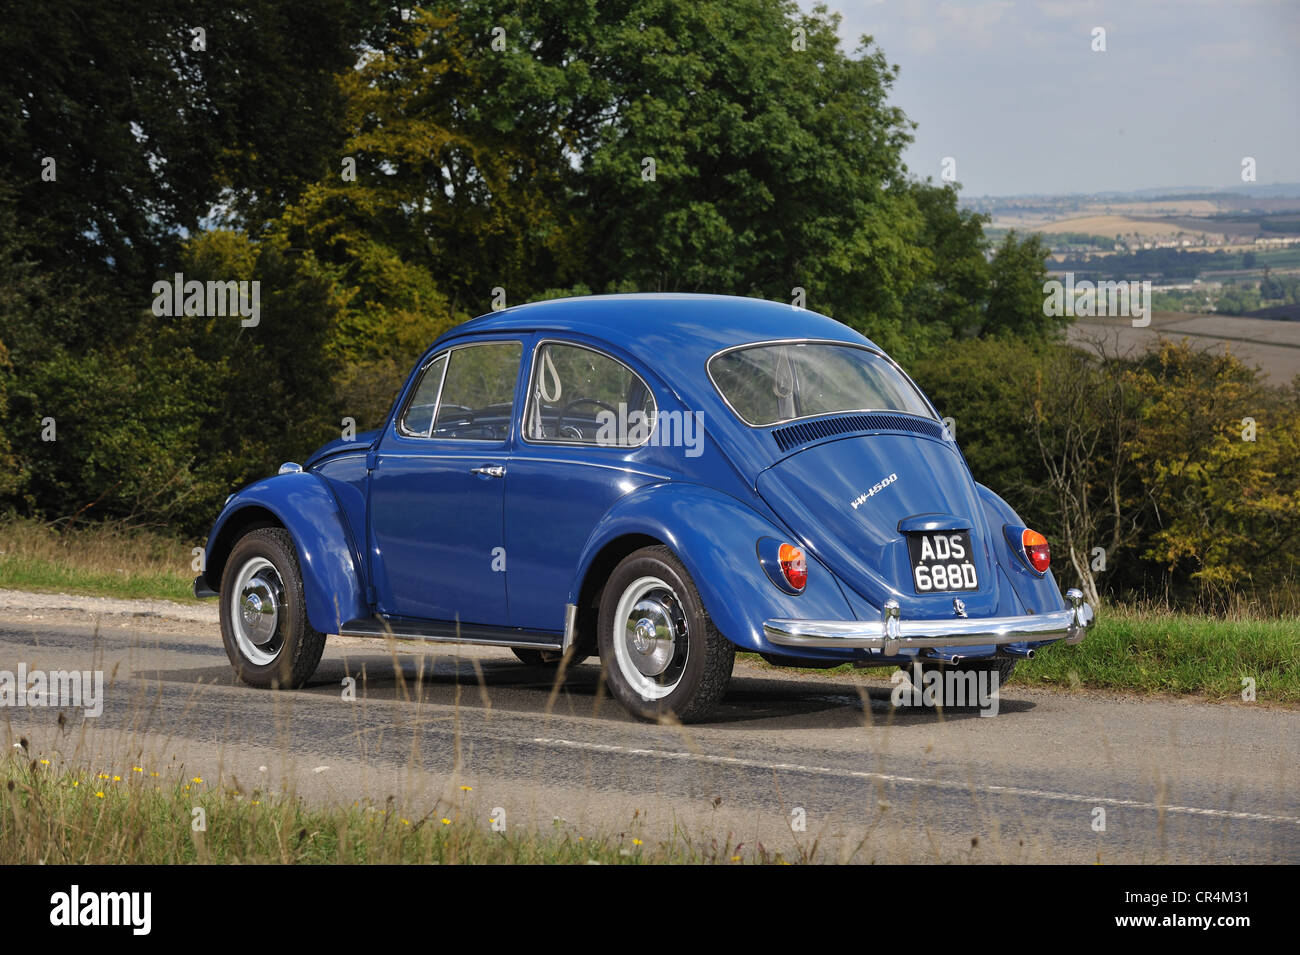 vw volkswagen beetle classic stock air cooled bug stock photo royalty  image